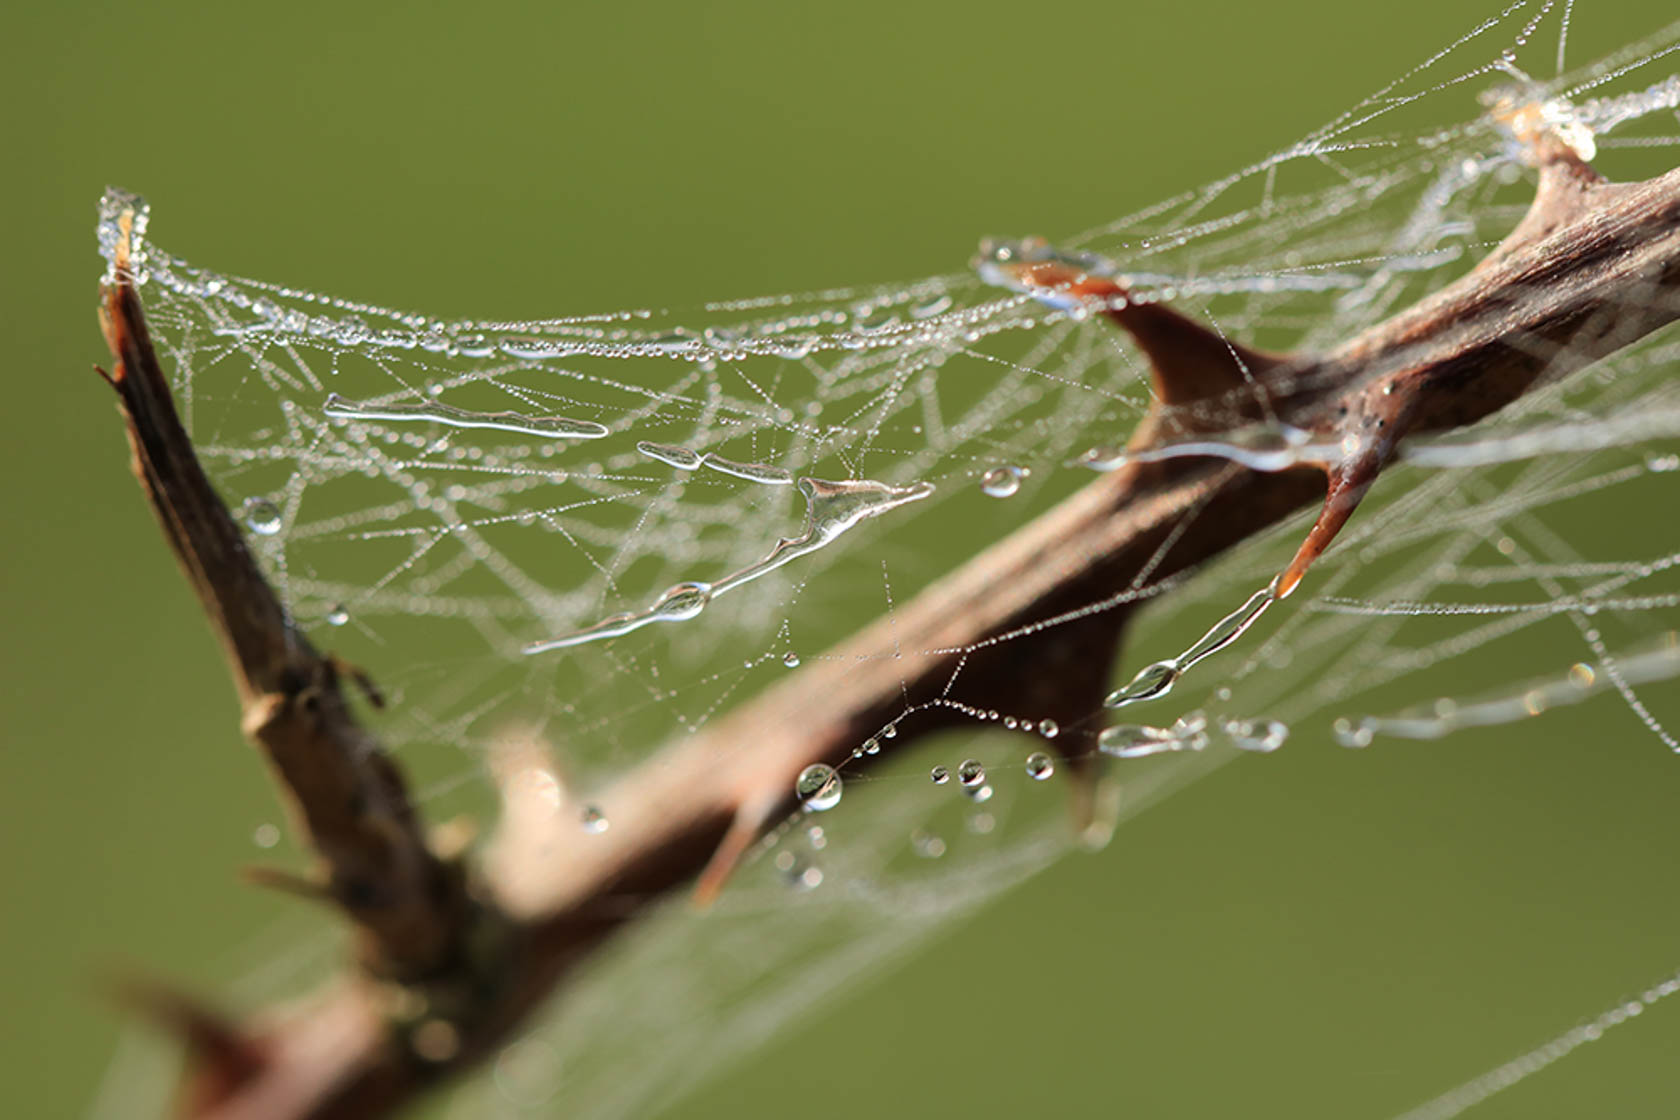 Spider web with water droplets taken with the Canon EOS 760D digital SLR camera